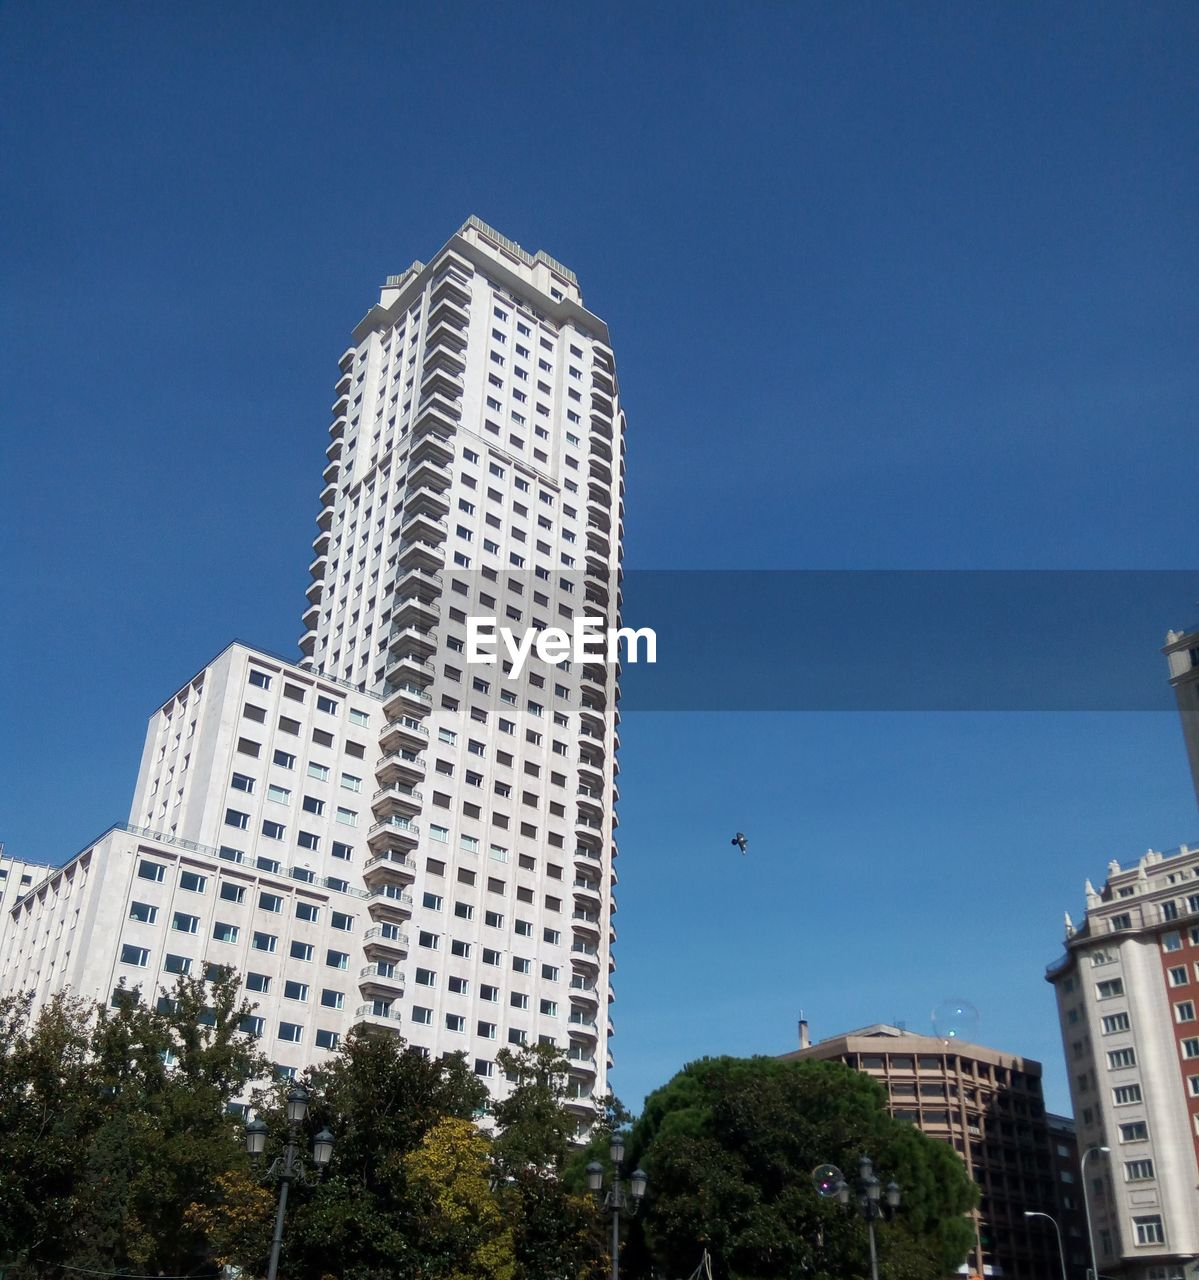 architecture, building exterior, low angle view, built structure, skyscraper, tree, city, day, blue, no people, clear sky, outdoors, modern, sky, cityscape